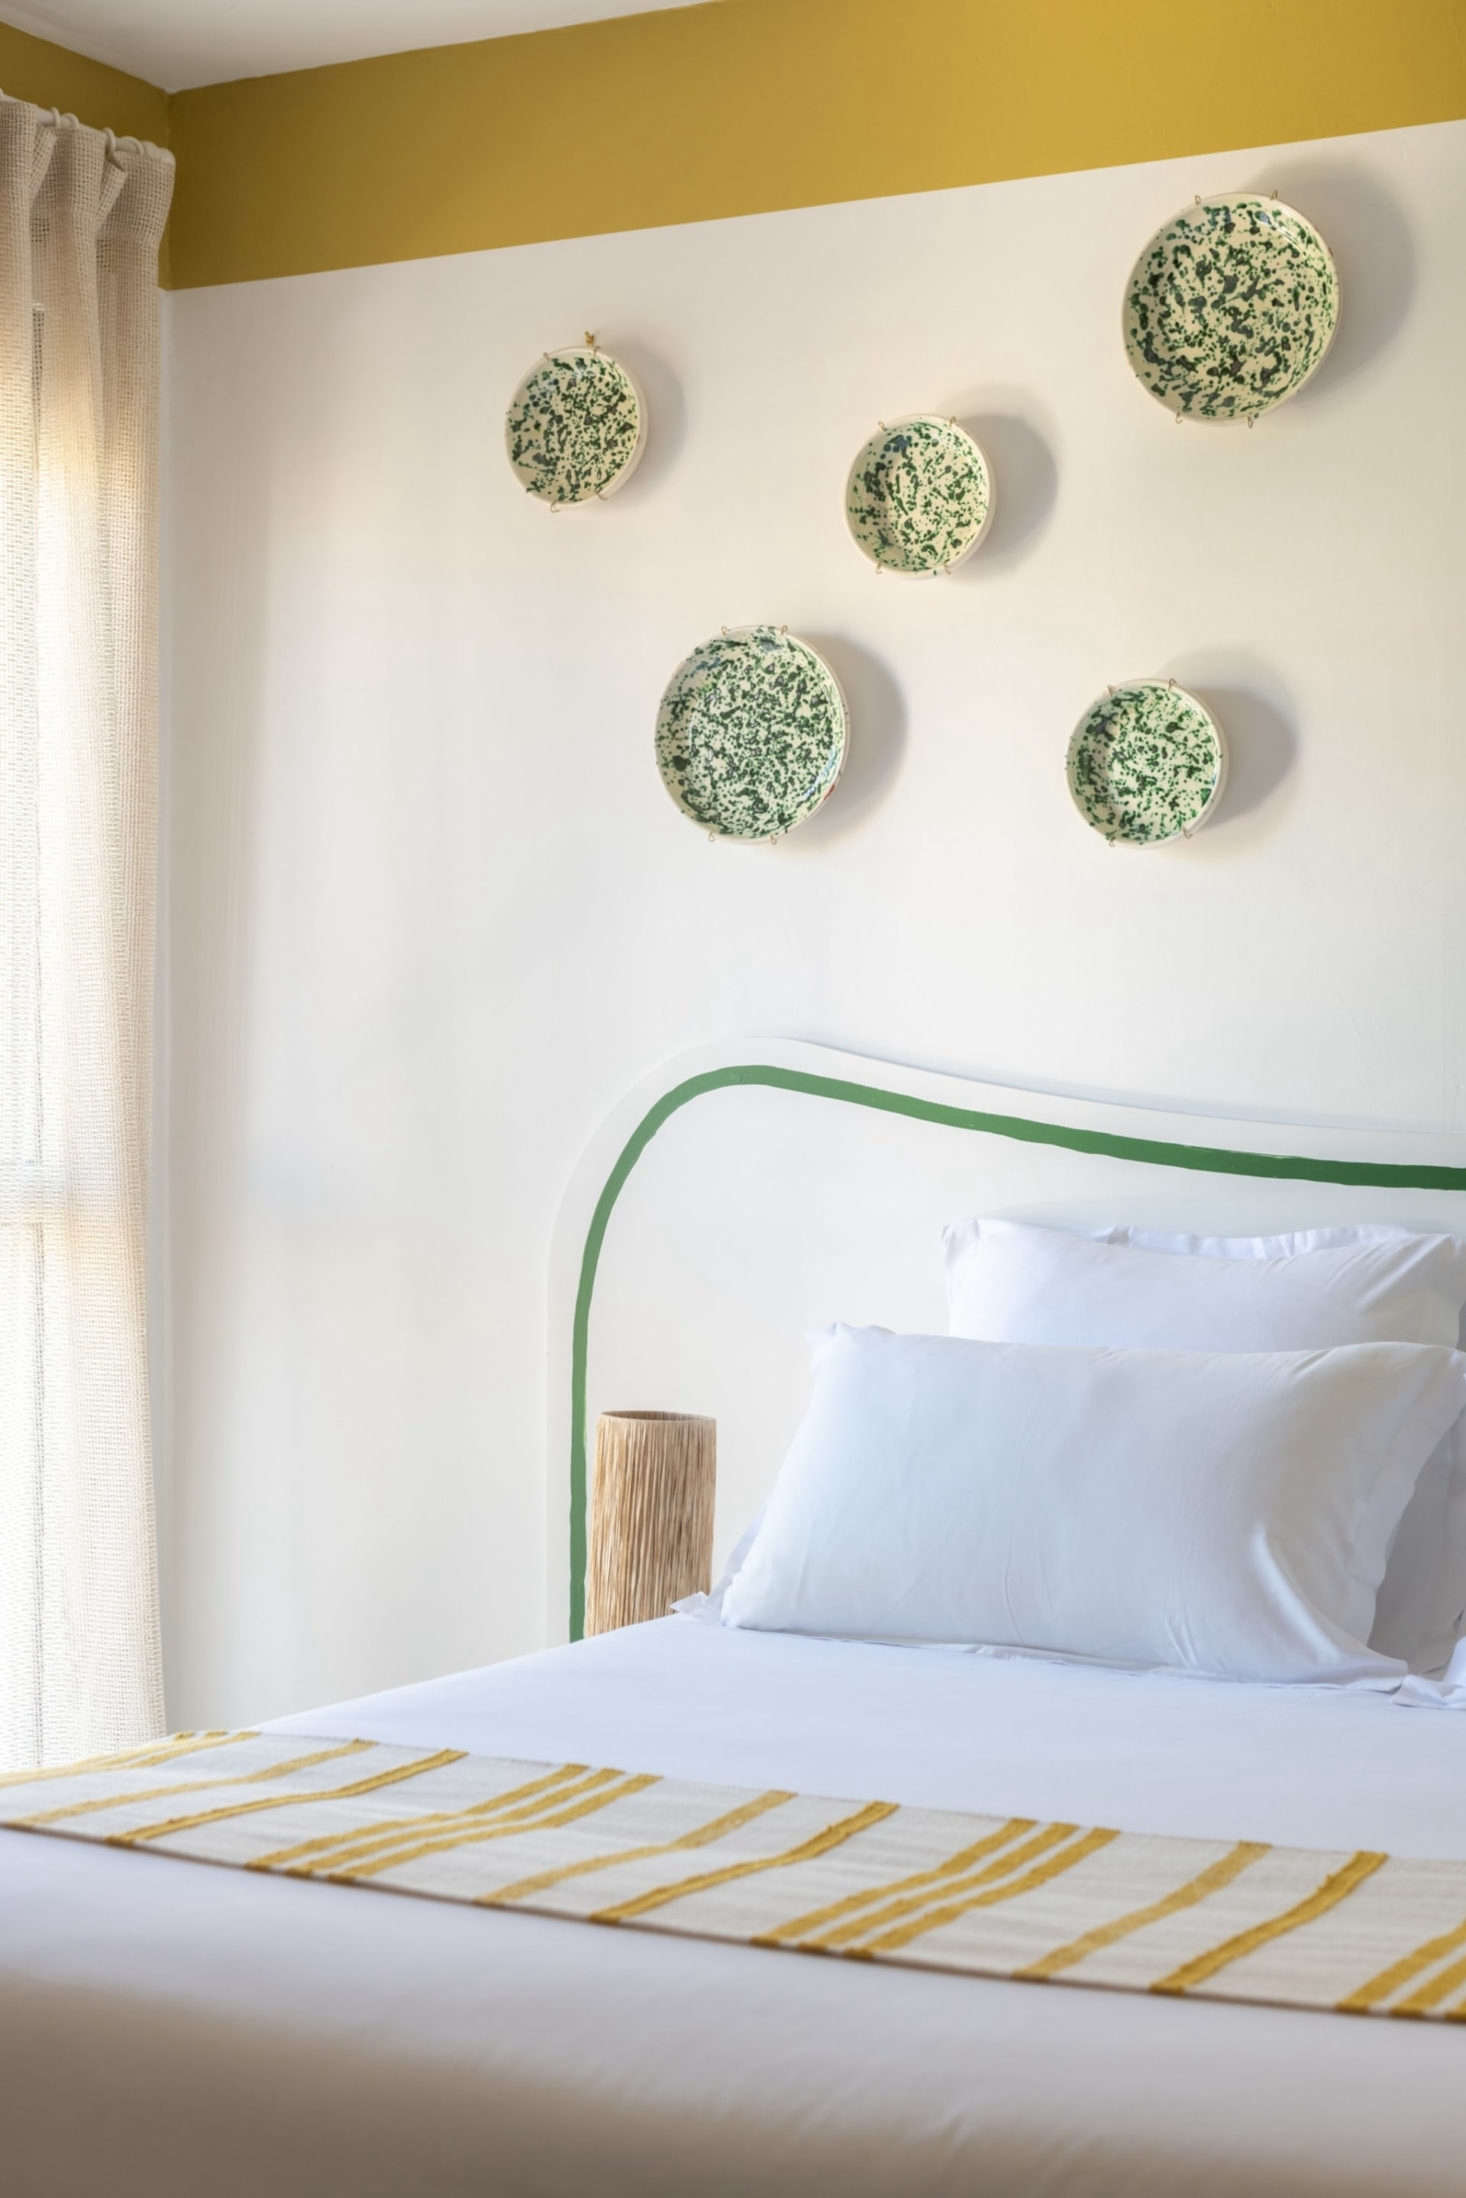 A collection of spatterware plates adds a dash of color to one of the bedrooms.